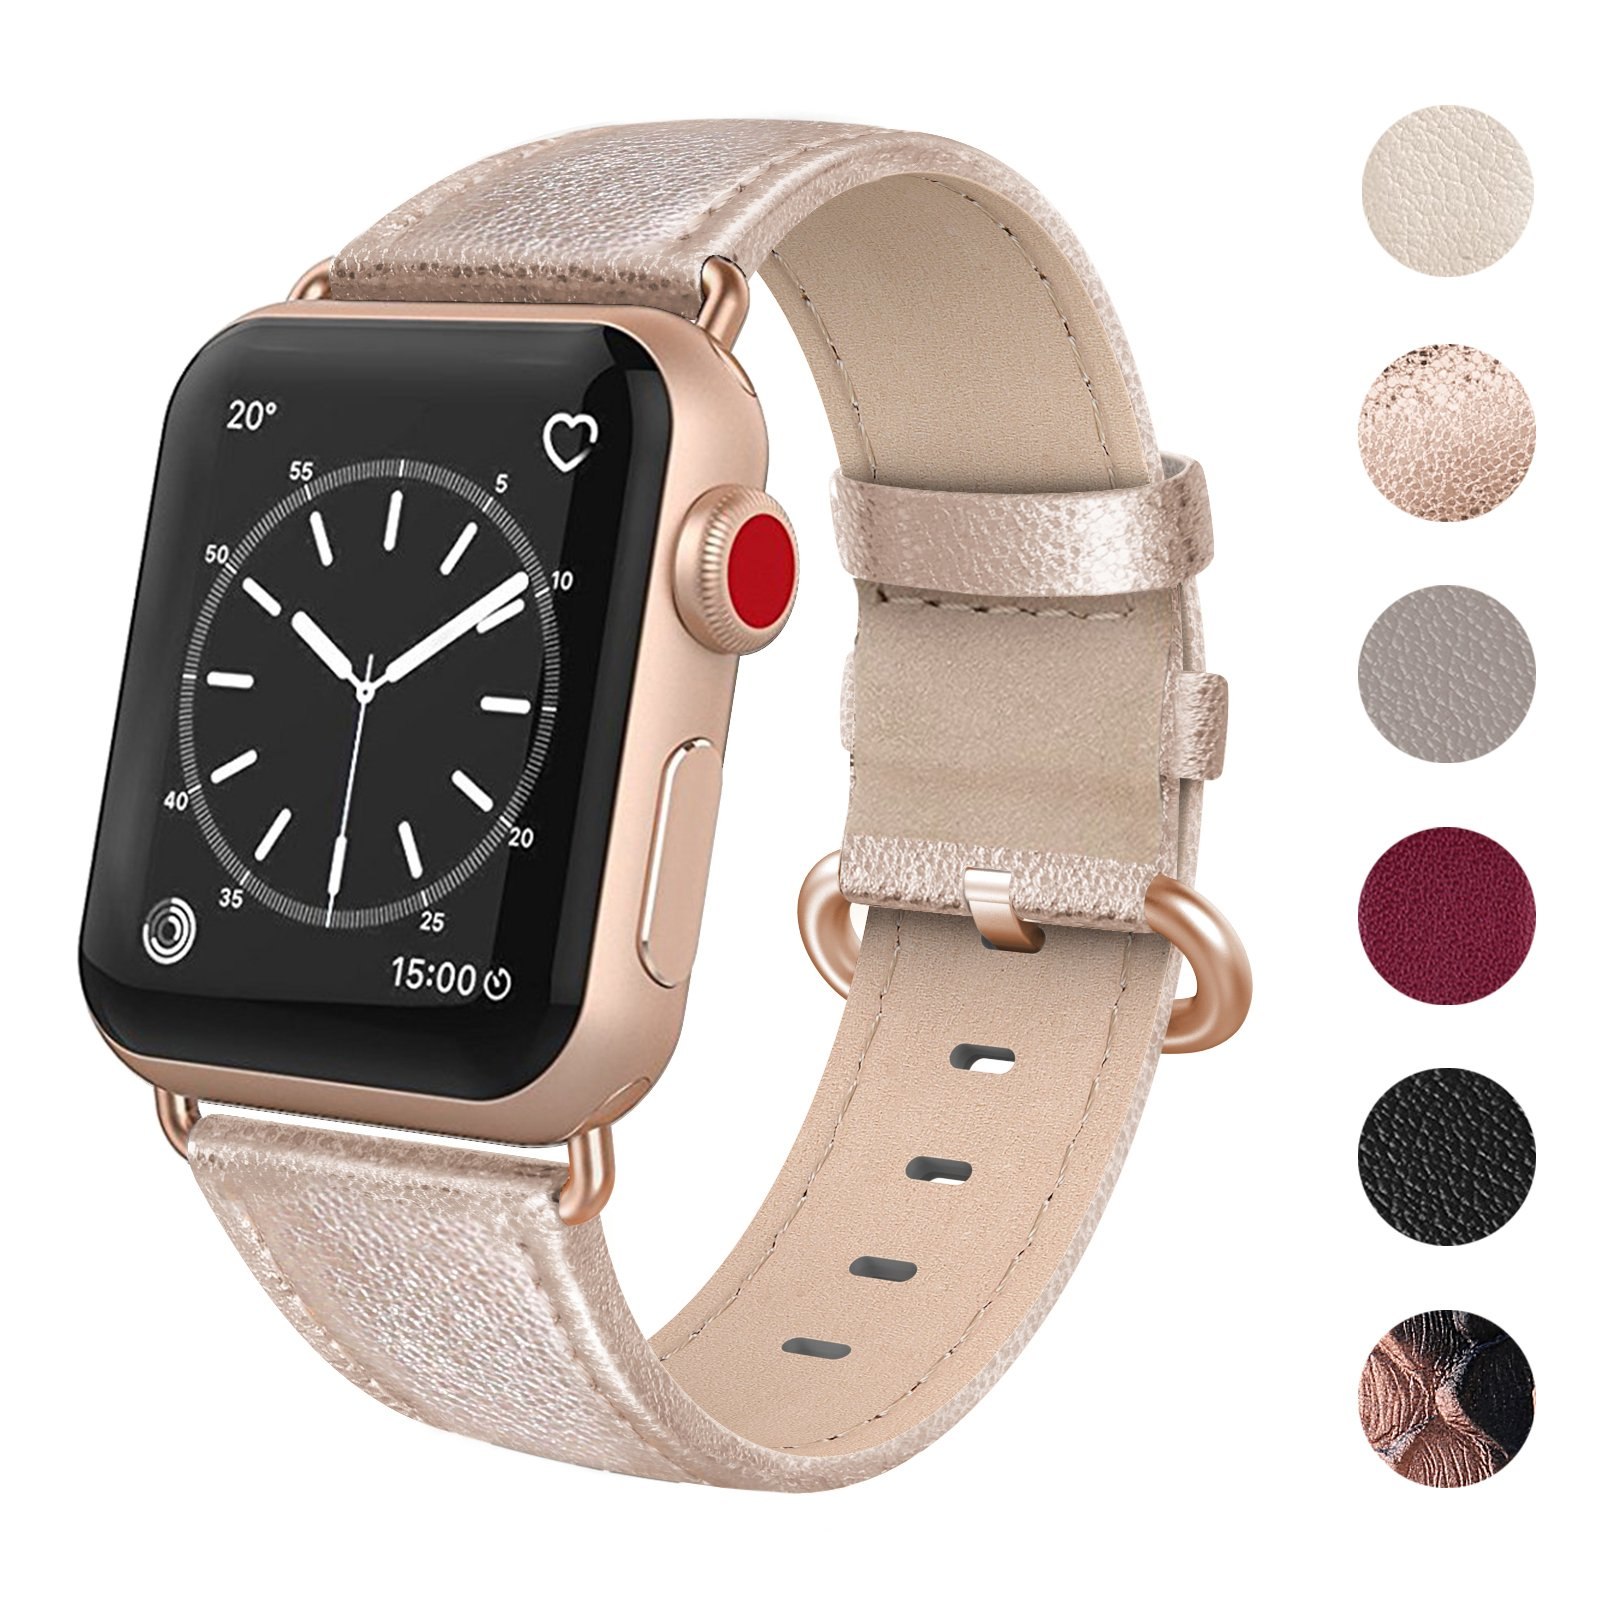 SWEES for Apple Watch Band 38mm Leather, iWatch Soft Genuine Leather Elegant Dressy Replacement Strap with Stainless Clasp for Apple Watch Series 3, Series 2, Series 1, Sports & Edition Women, Gold